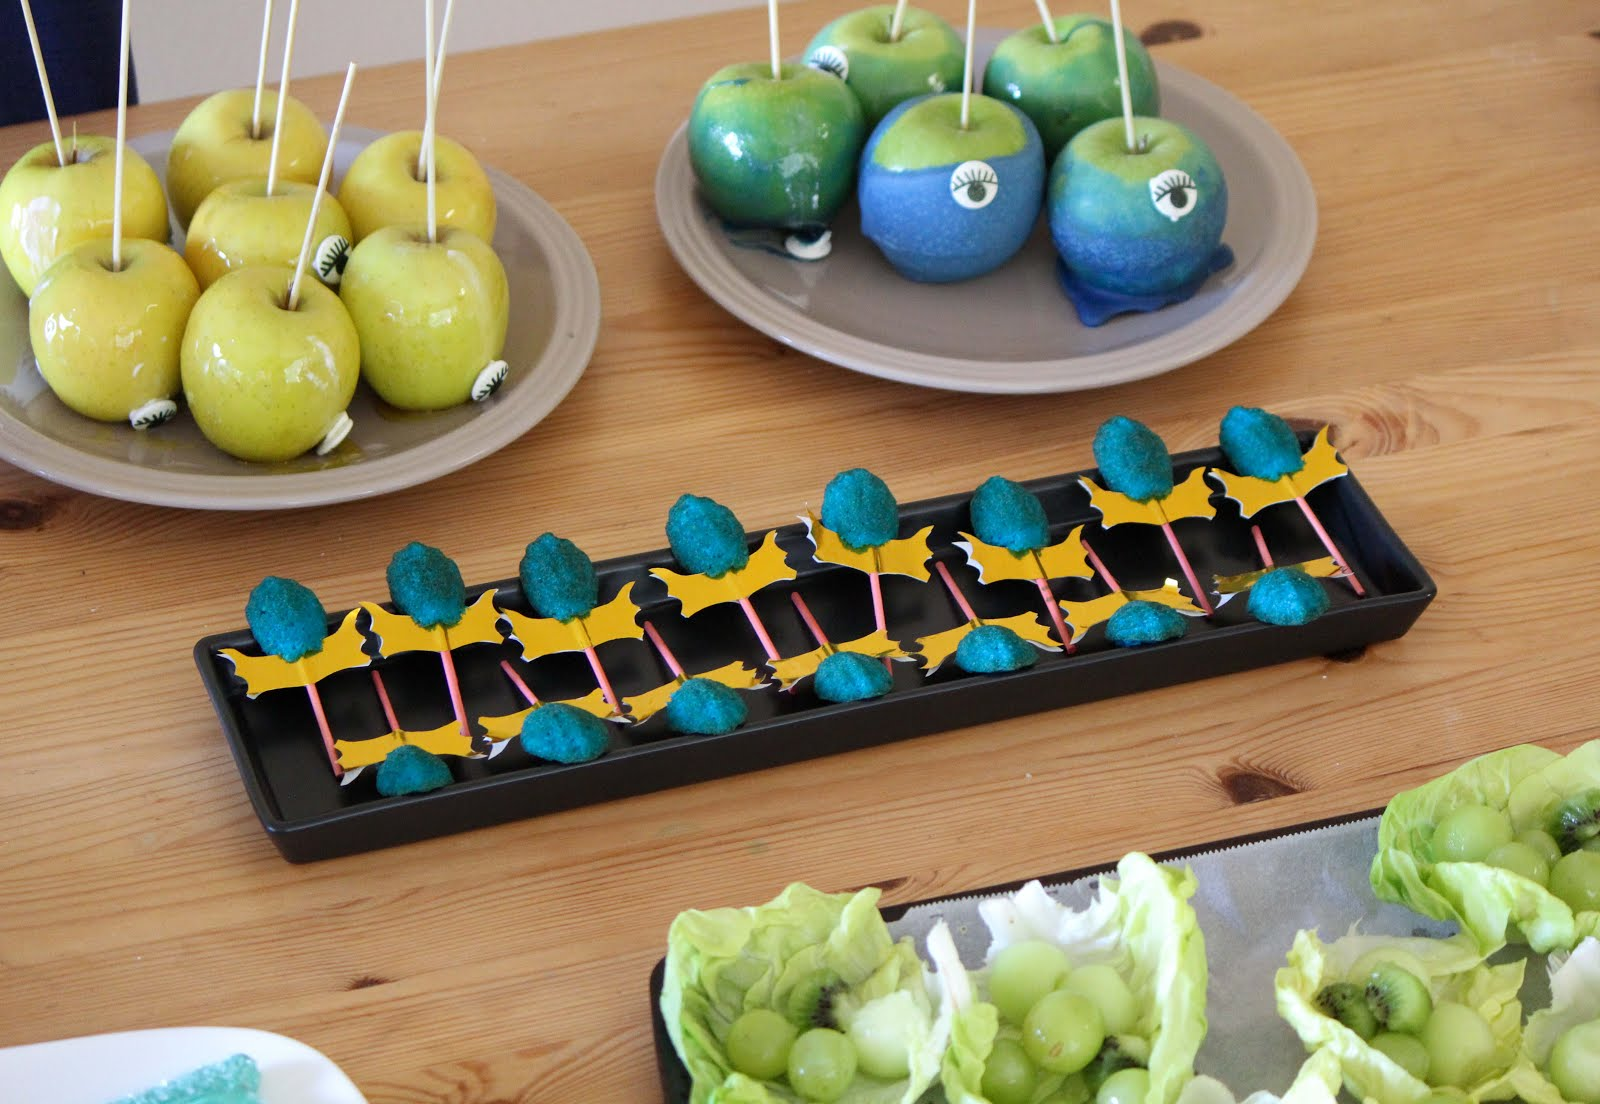 Dota 2 aghanim's scepter madeleine cakes, served with observer and sentry wards.